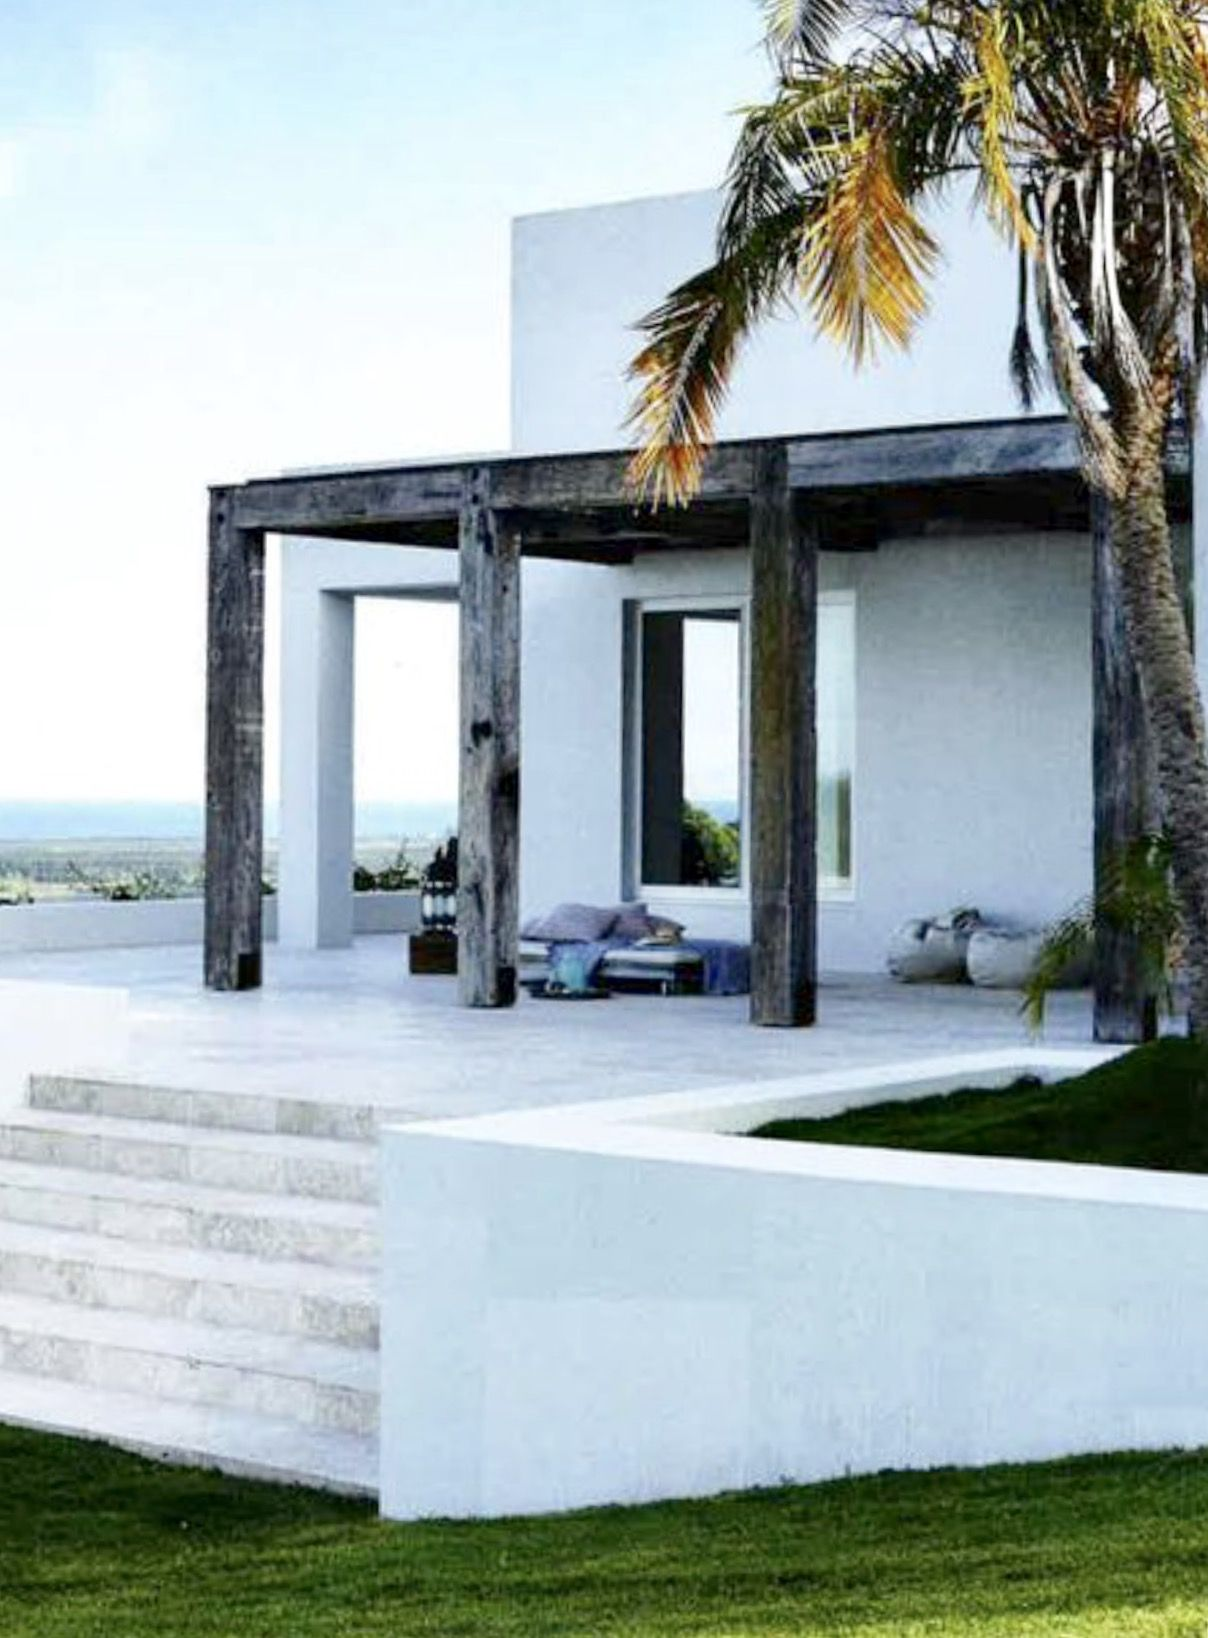 Unpolished Modern Home In Cyprus Blending Industrial: [CasaGiardino] ♛ Stucco Or Polished Cement Cladding. Rough